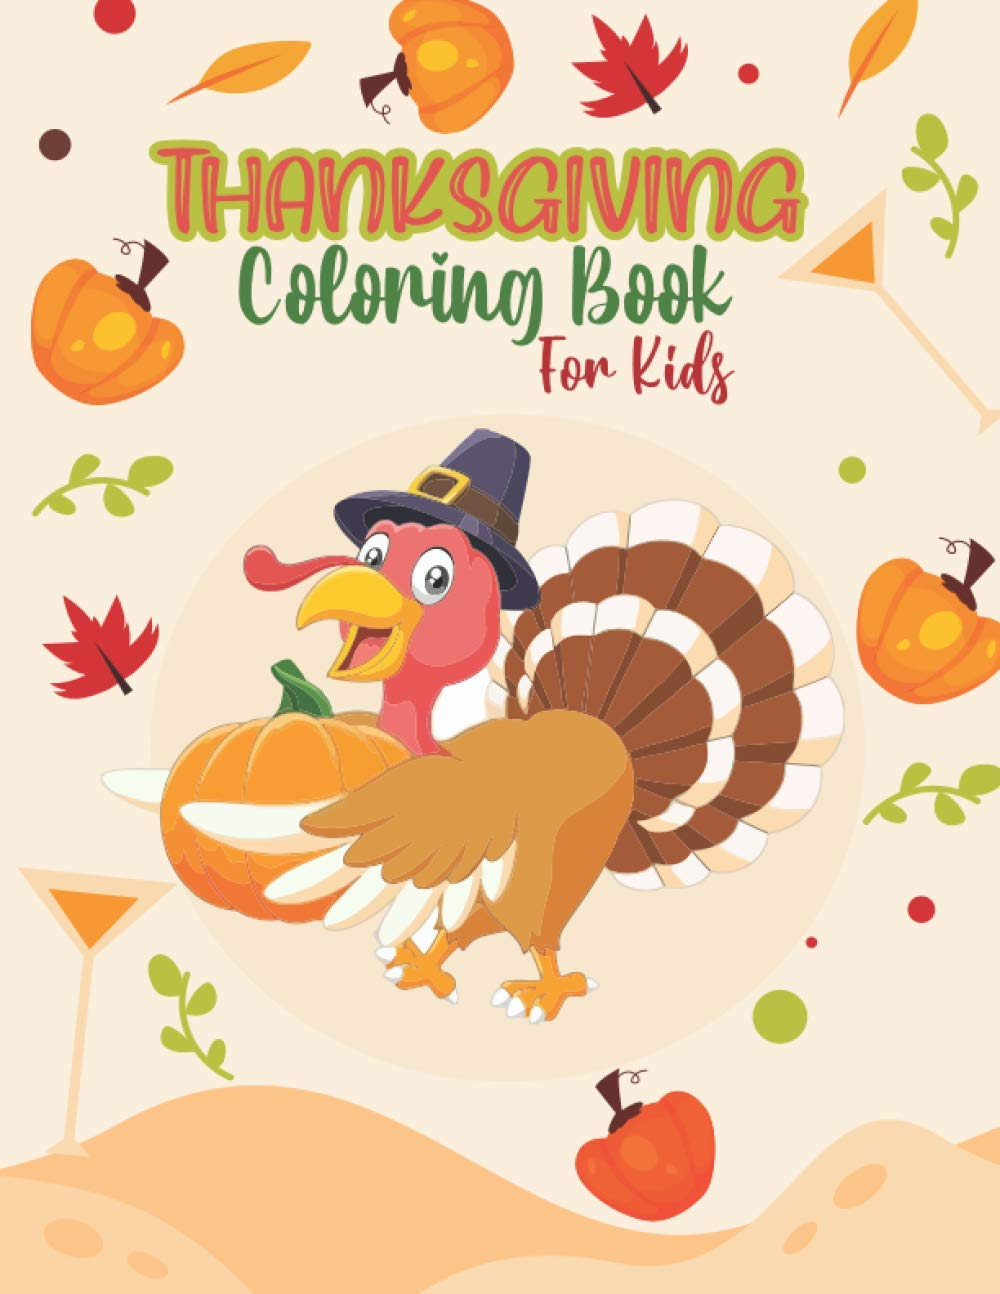 Thanksgiving Coloring Book For Kids Funny And Easy Thanksgiving Turkey Coloring Pages For Children Boys Girls Toddlers And Preschool Specially Toddlers Children Teens Ages 2 4 2 5 4 8 Publications Creative Zone 9798698249535 Amazon Com